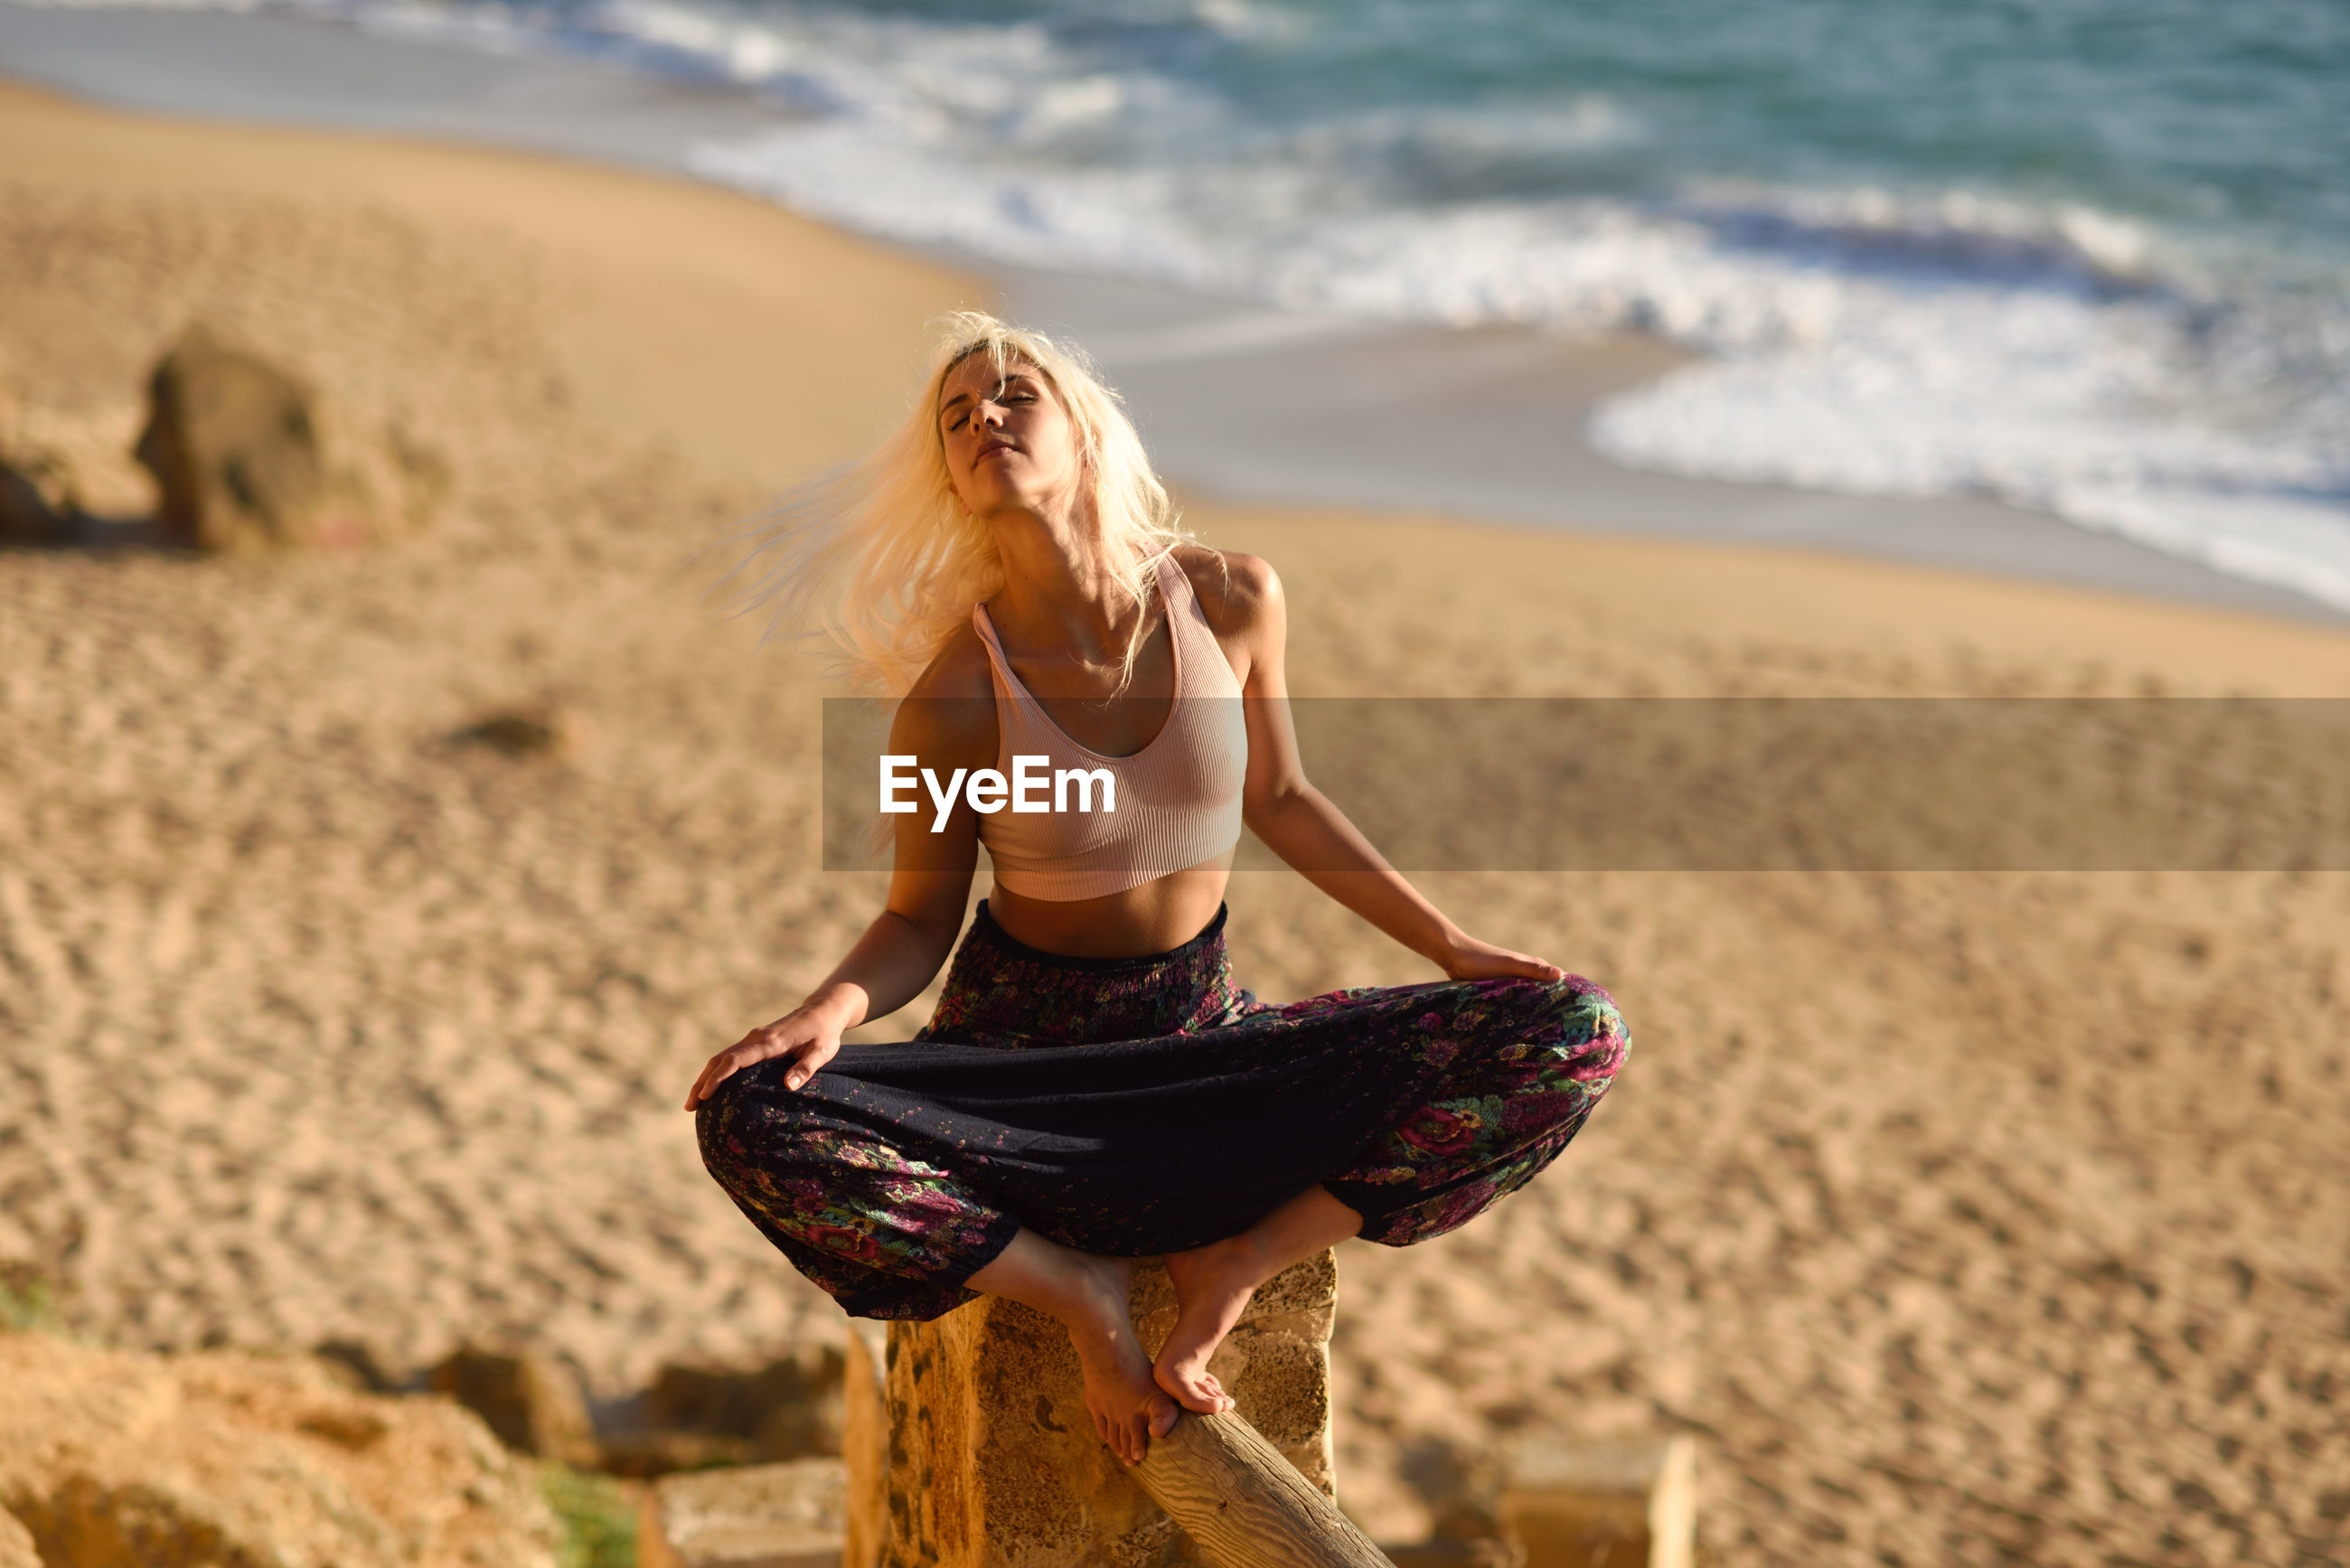 Young woman meditating while sitting on rock at beach against sky